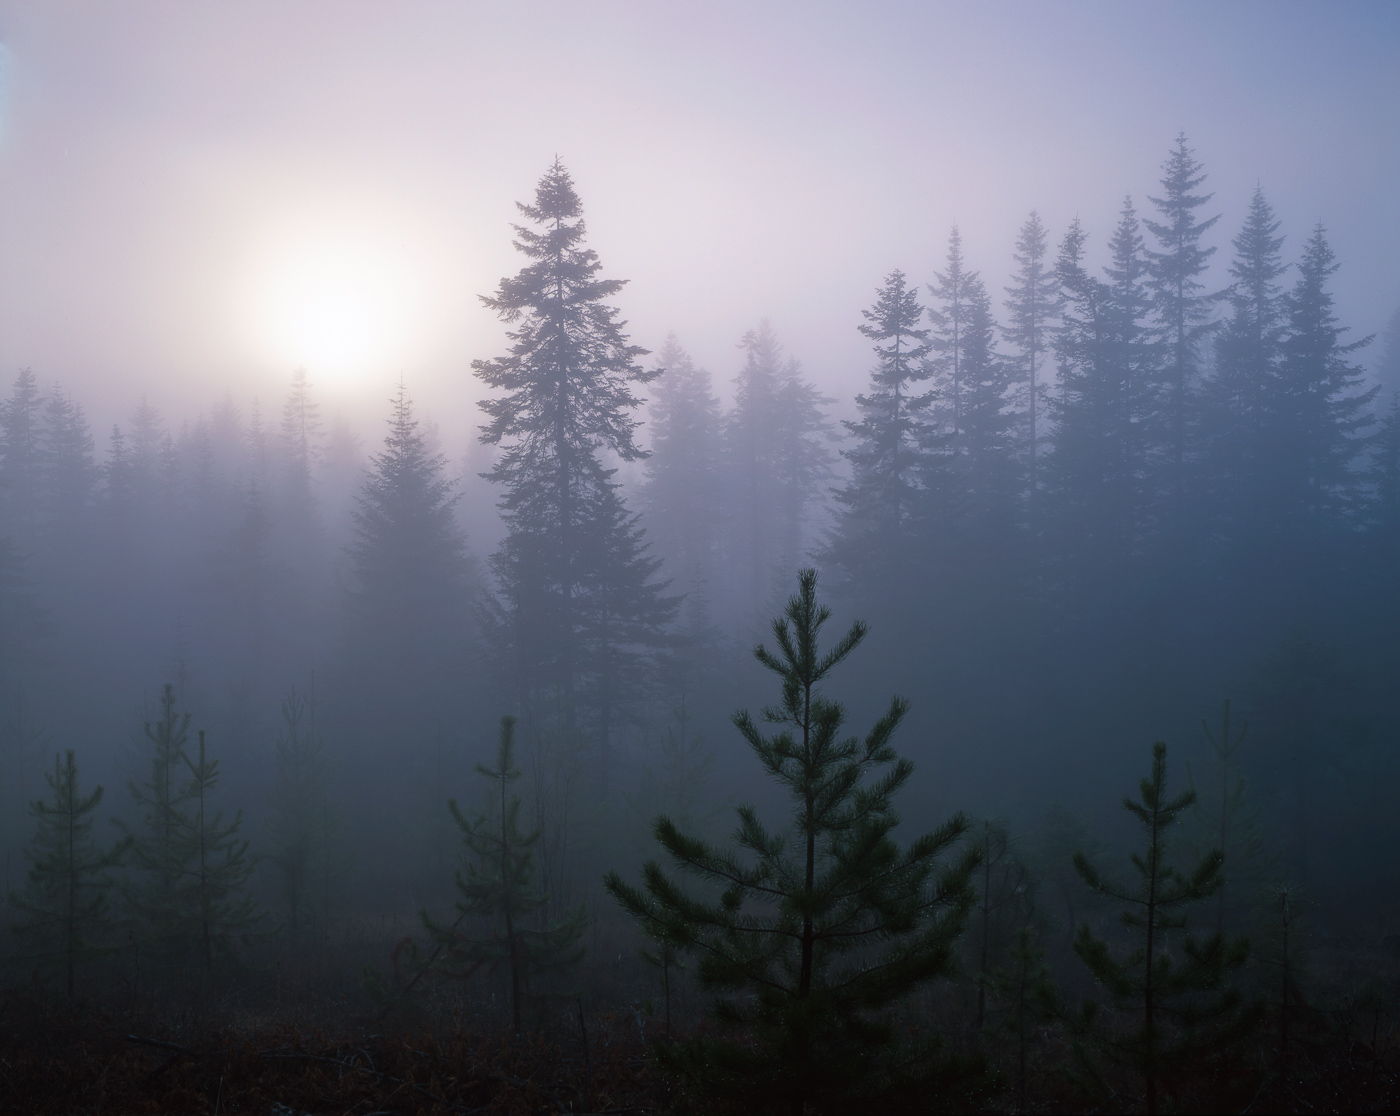 Fog Shrouded Pines on the lolo trail, Nez Perce Ntl. Forest, Lewis and Clark National Historic trail, Idaho